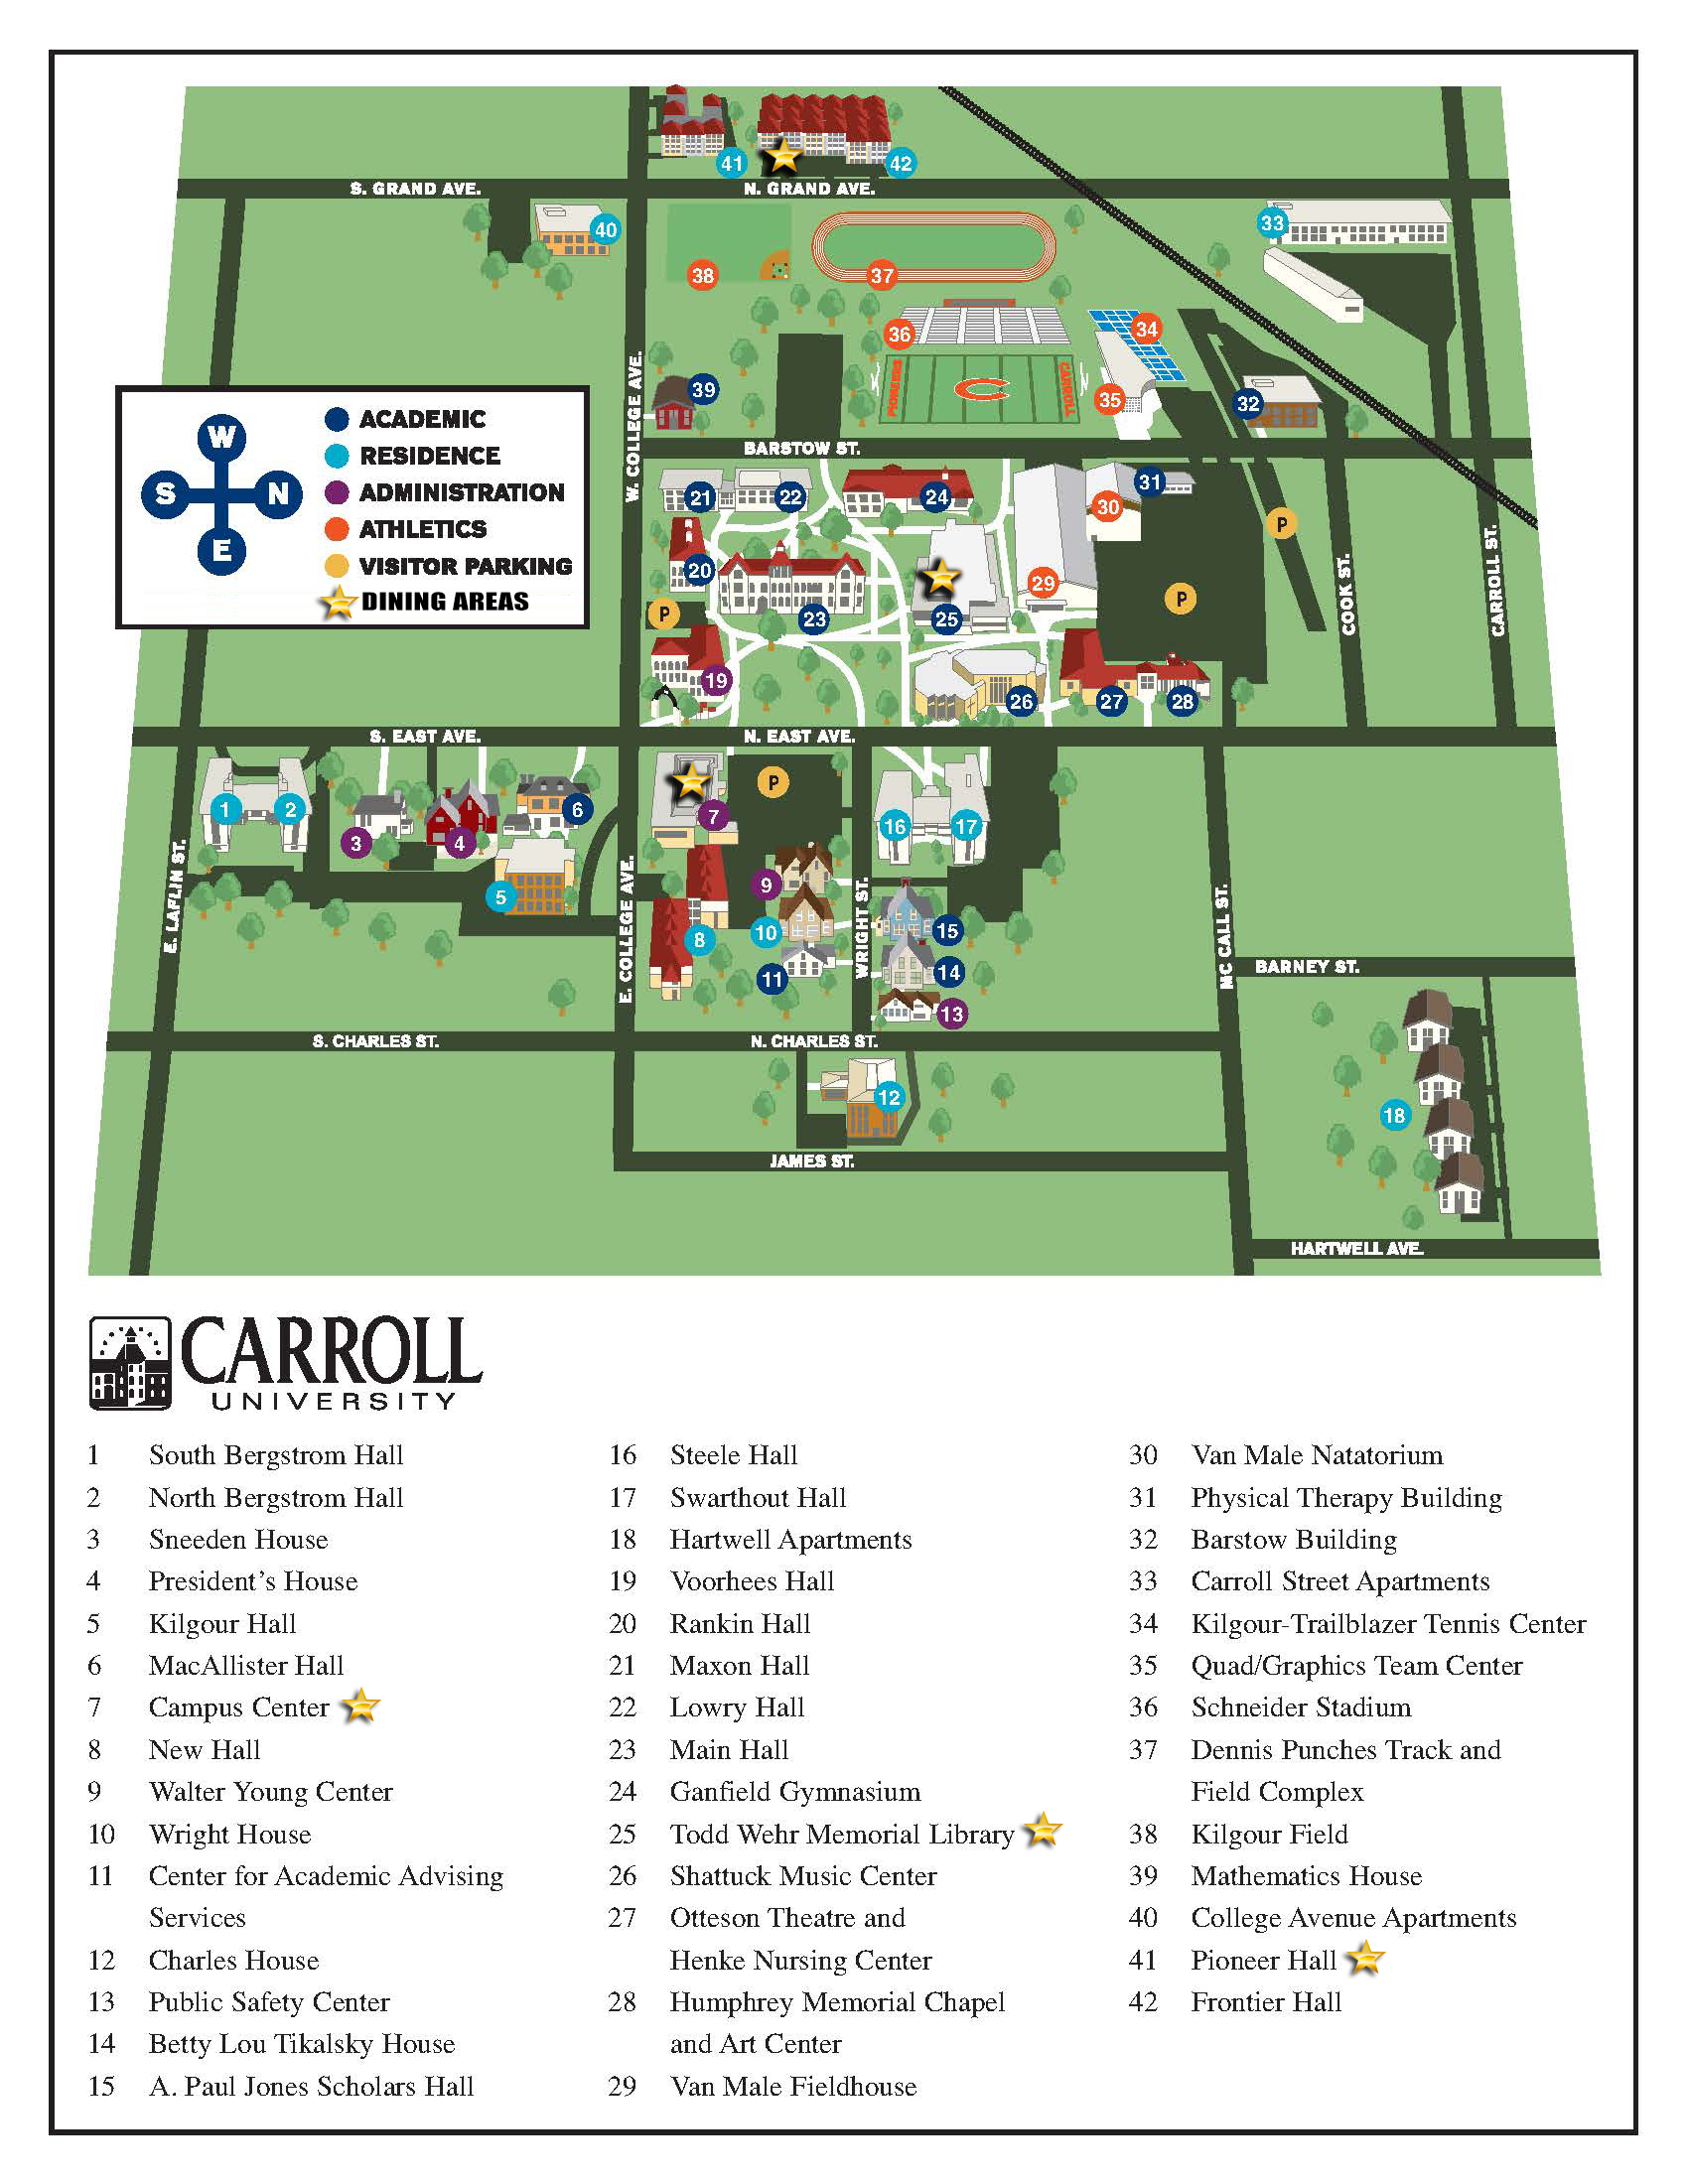 carroll university campus map Dining Services Map Of Dining Locations My Carrollu carroll university campus map